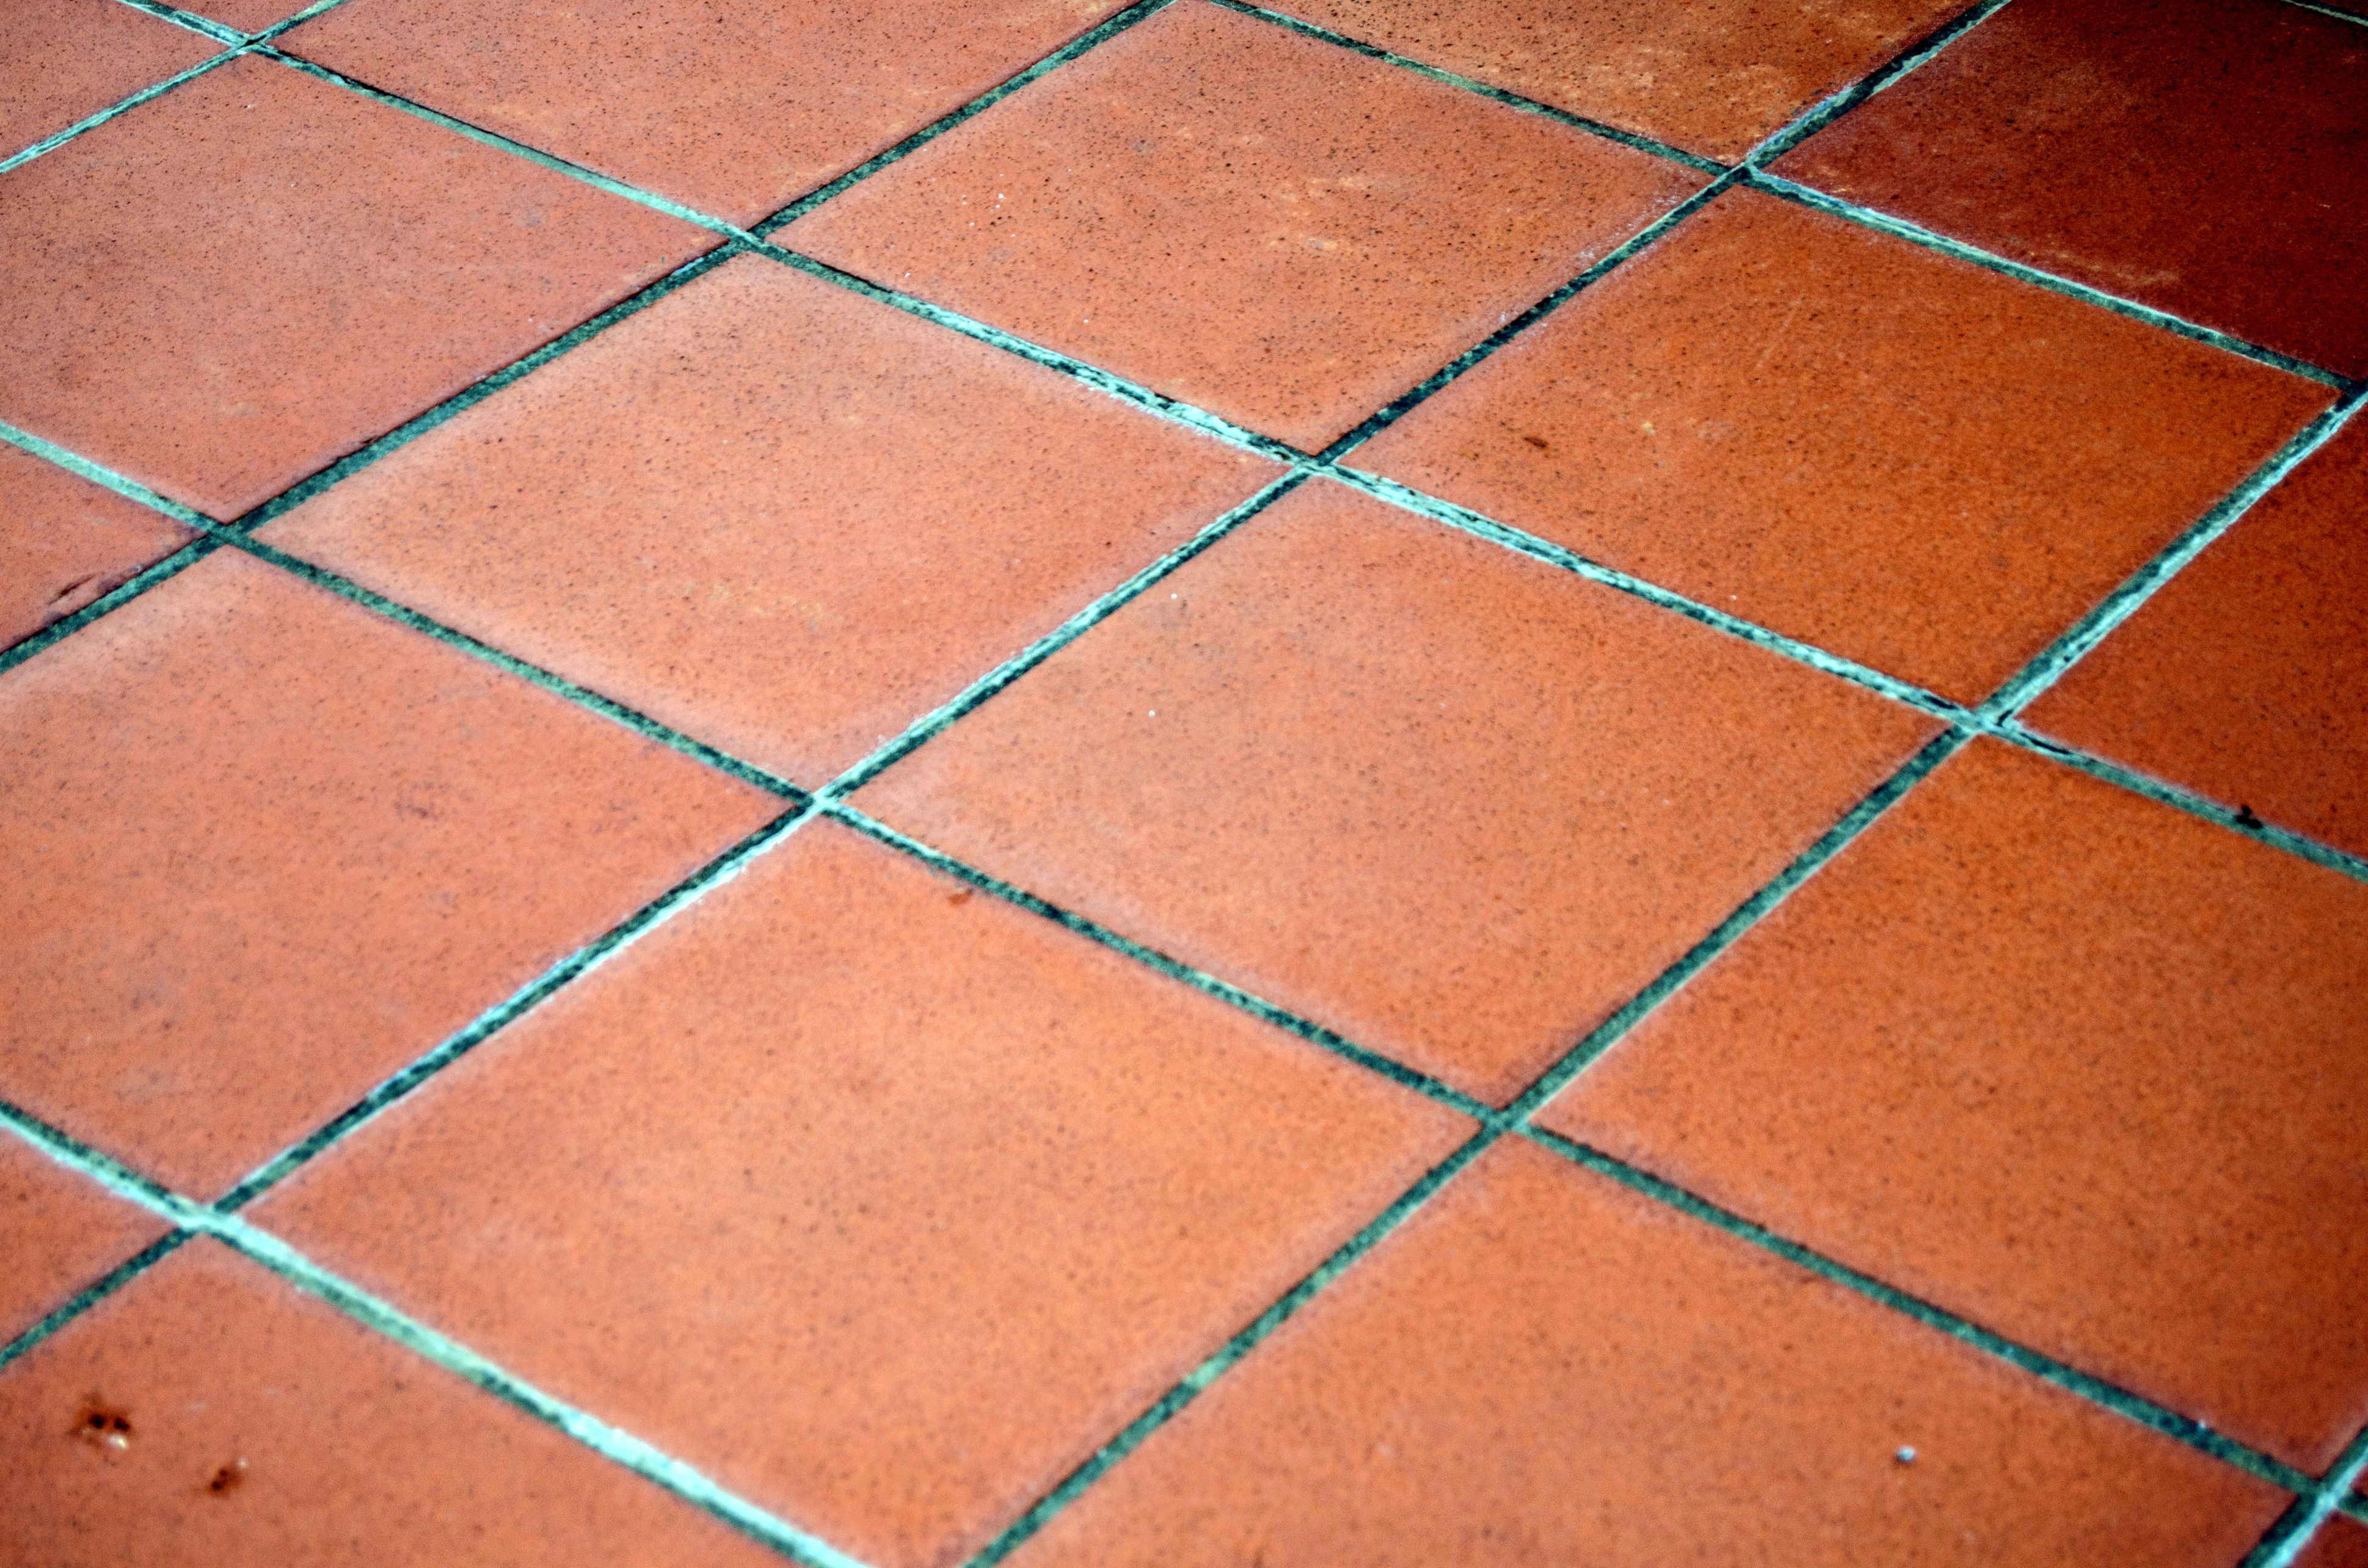 Buying terracotta flooring tiles overview terracotta floor tiles the uses characteristics and more dailygadgetfo Choice Image